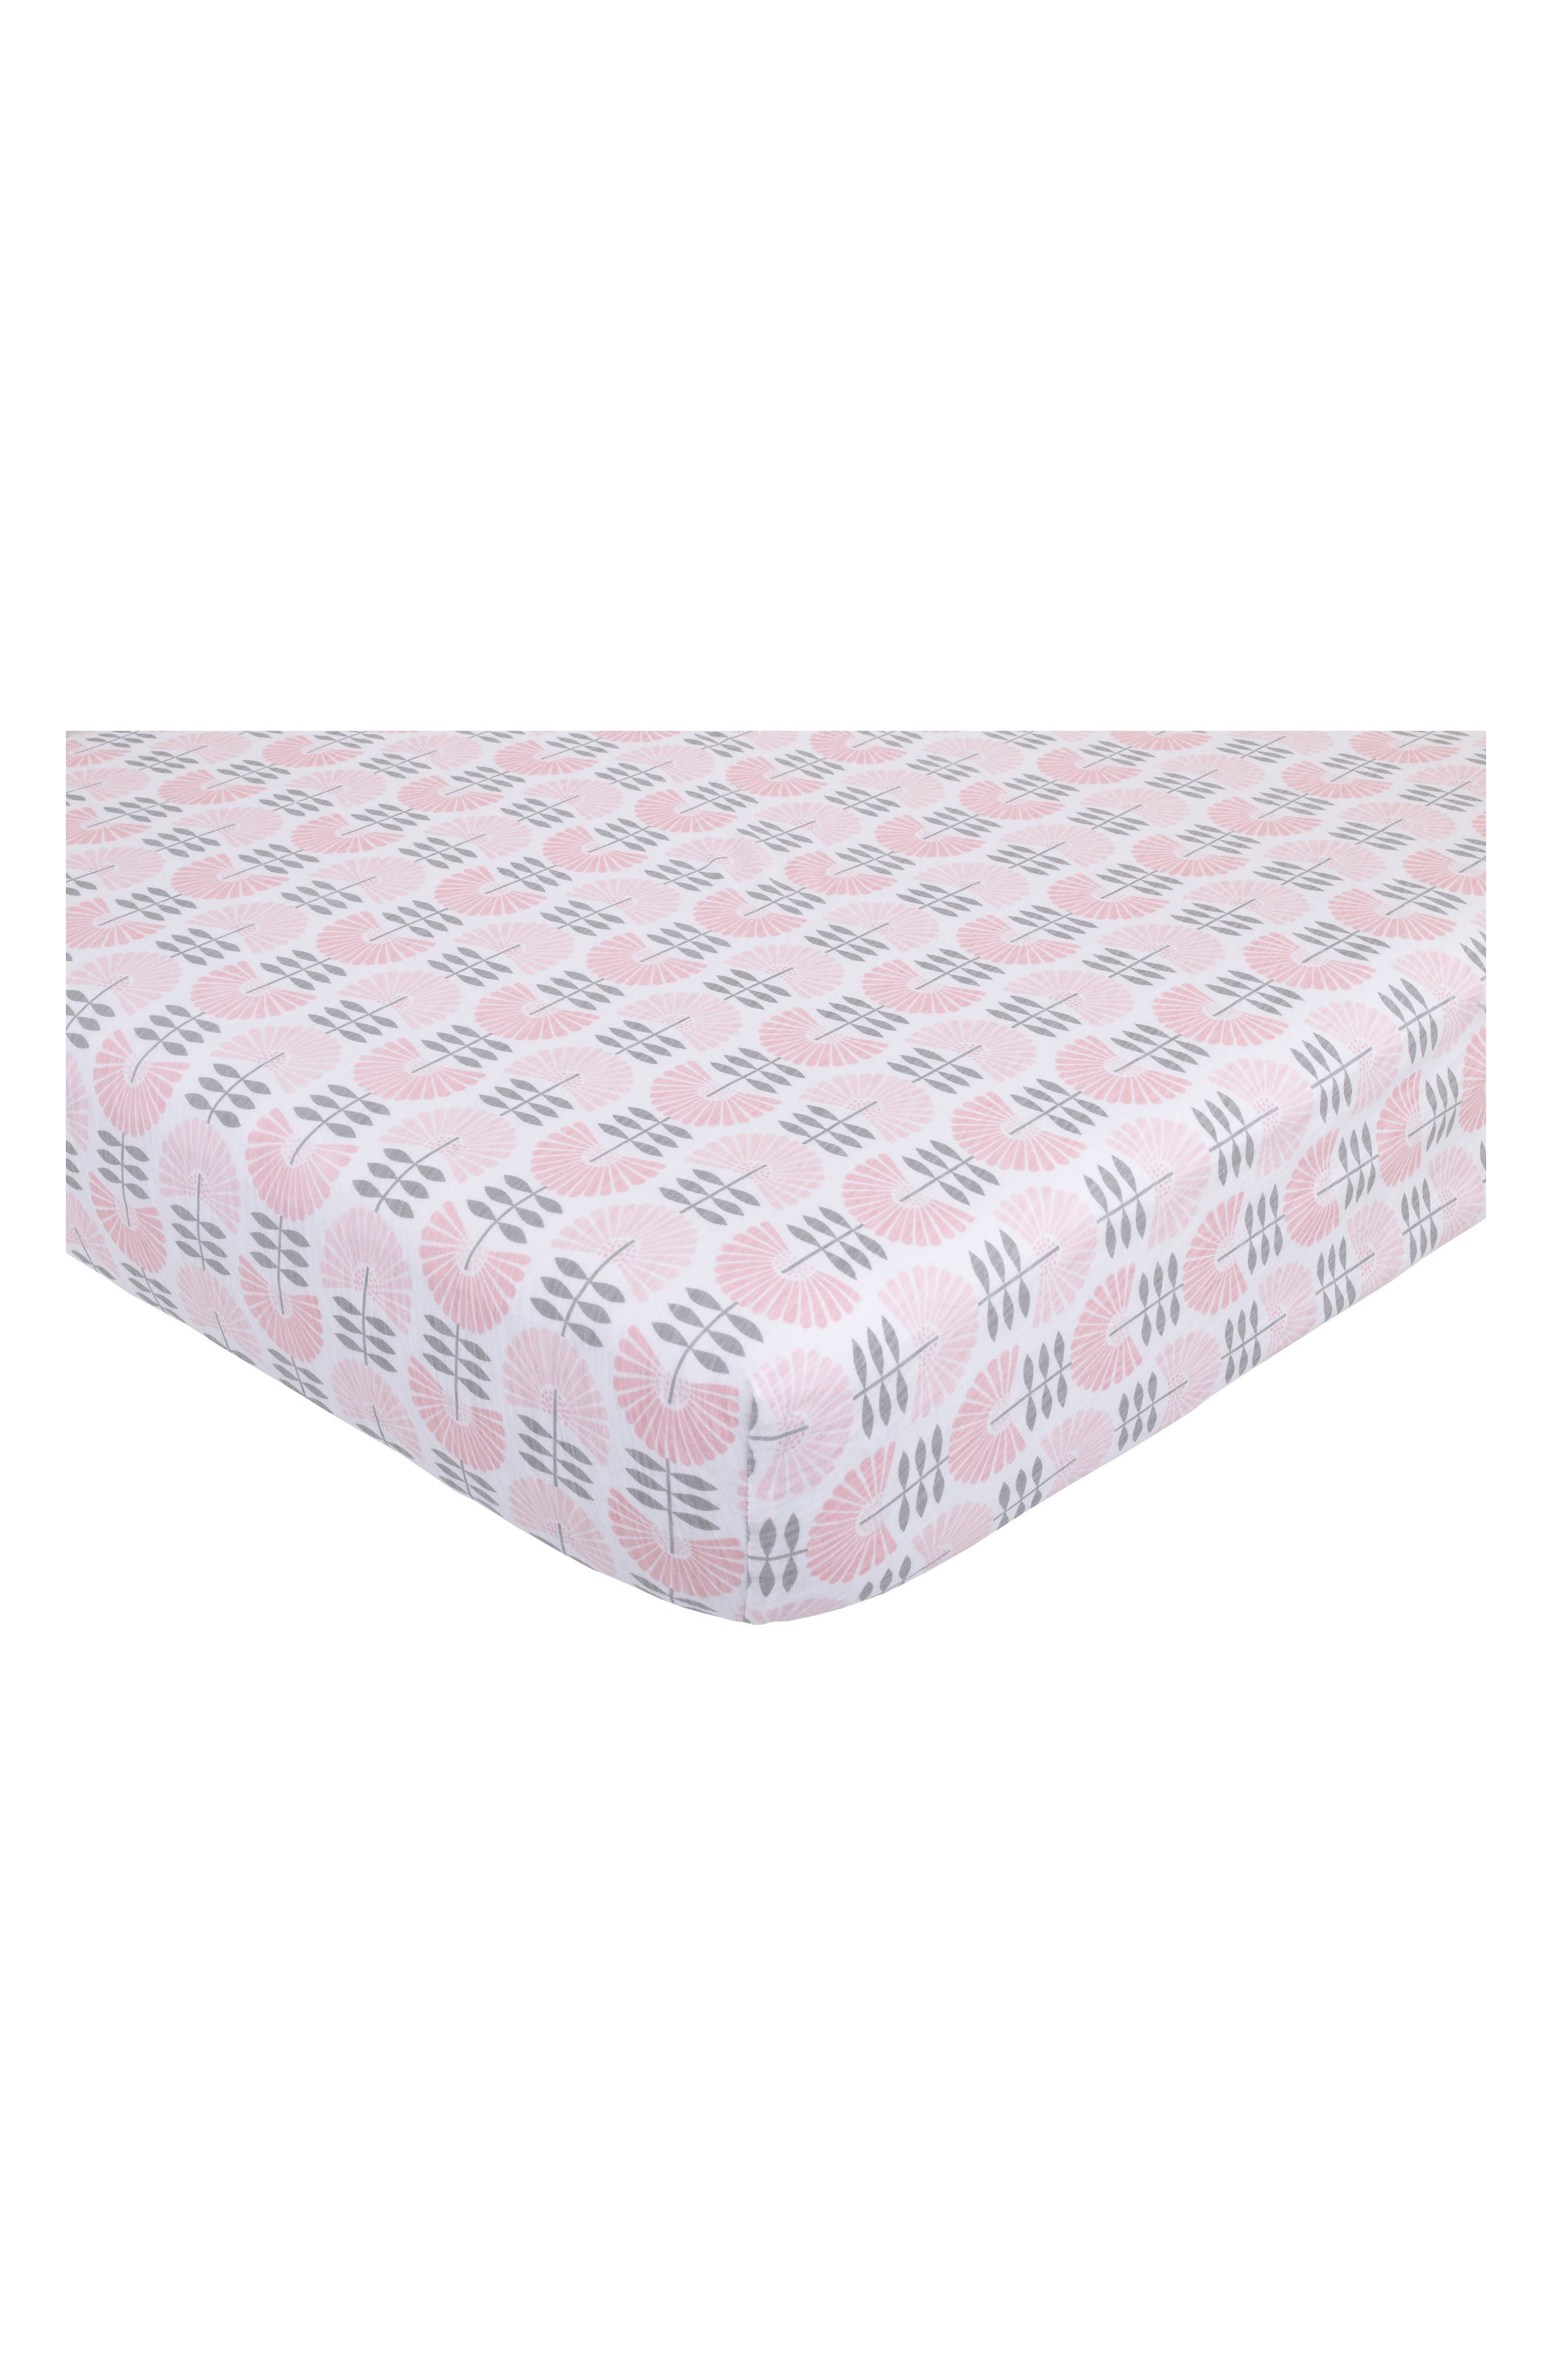 Southwest Skies Fitted Sheet,                         Main,                         color, Light Pink